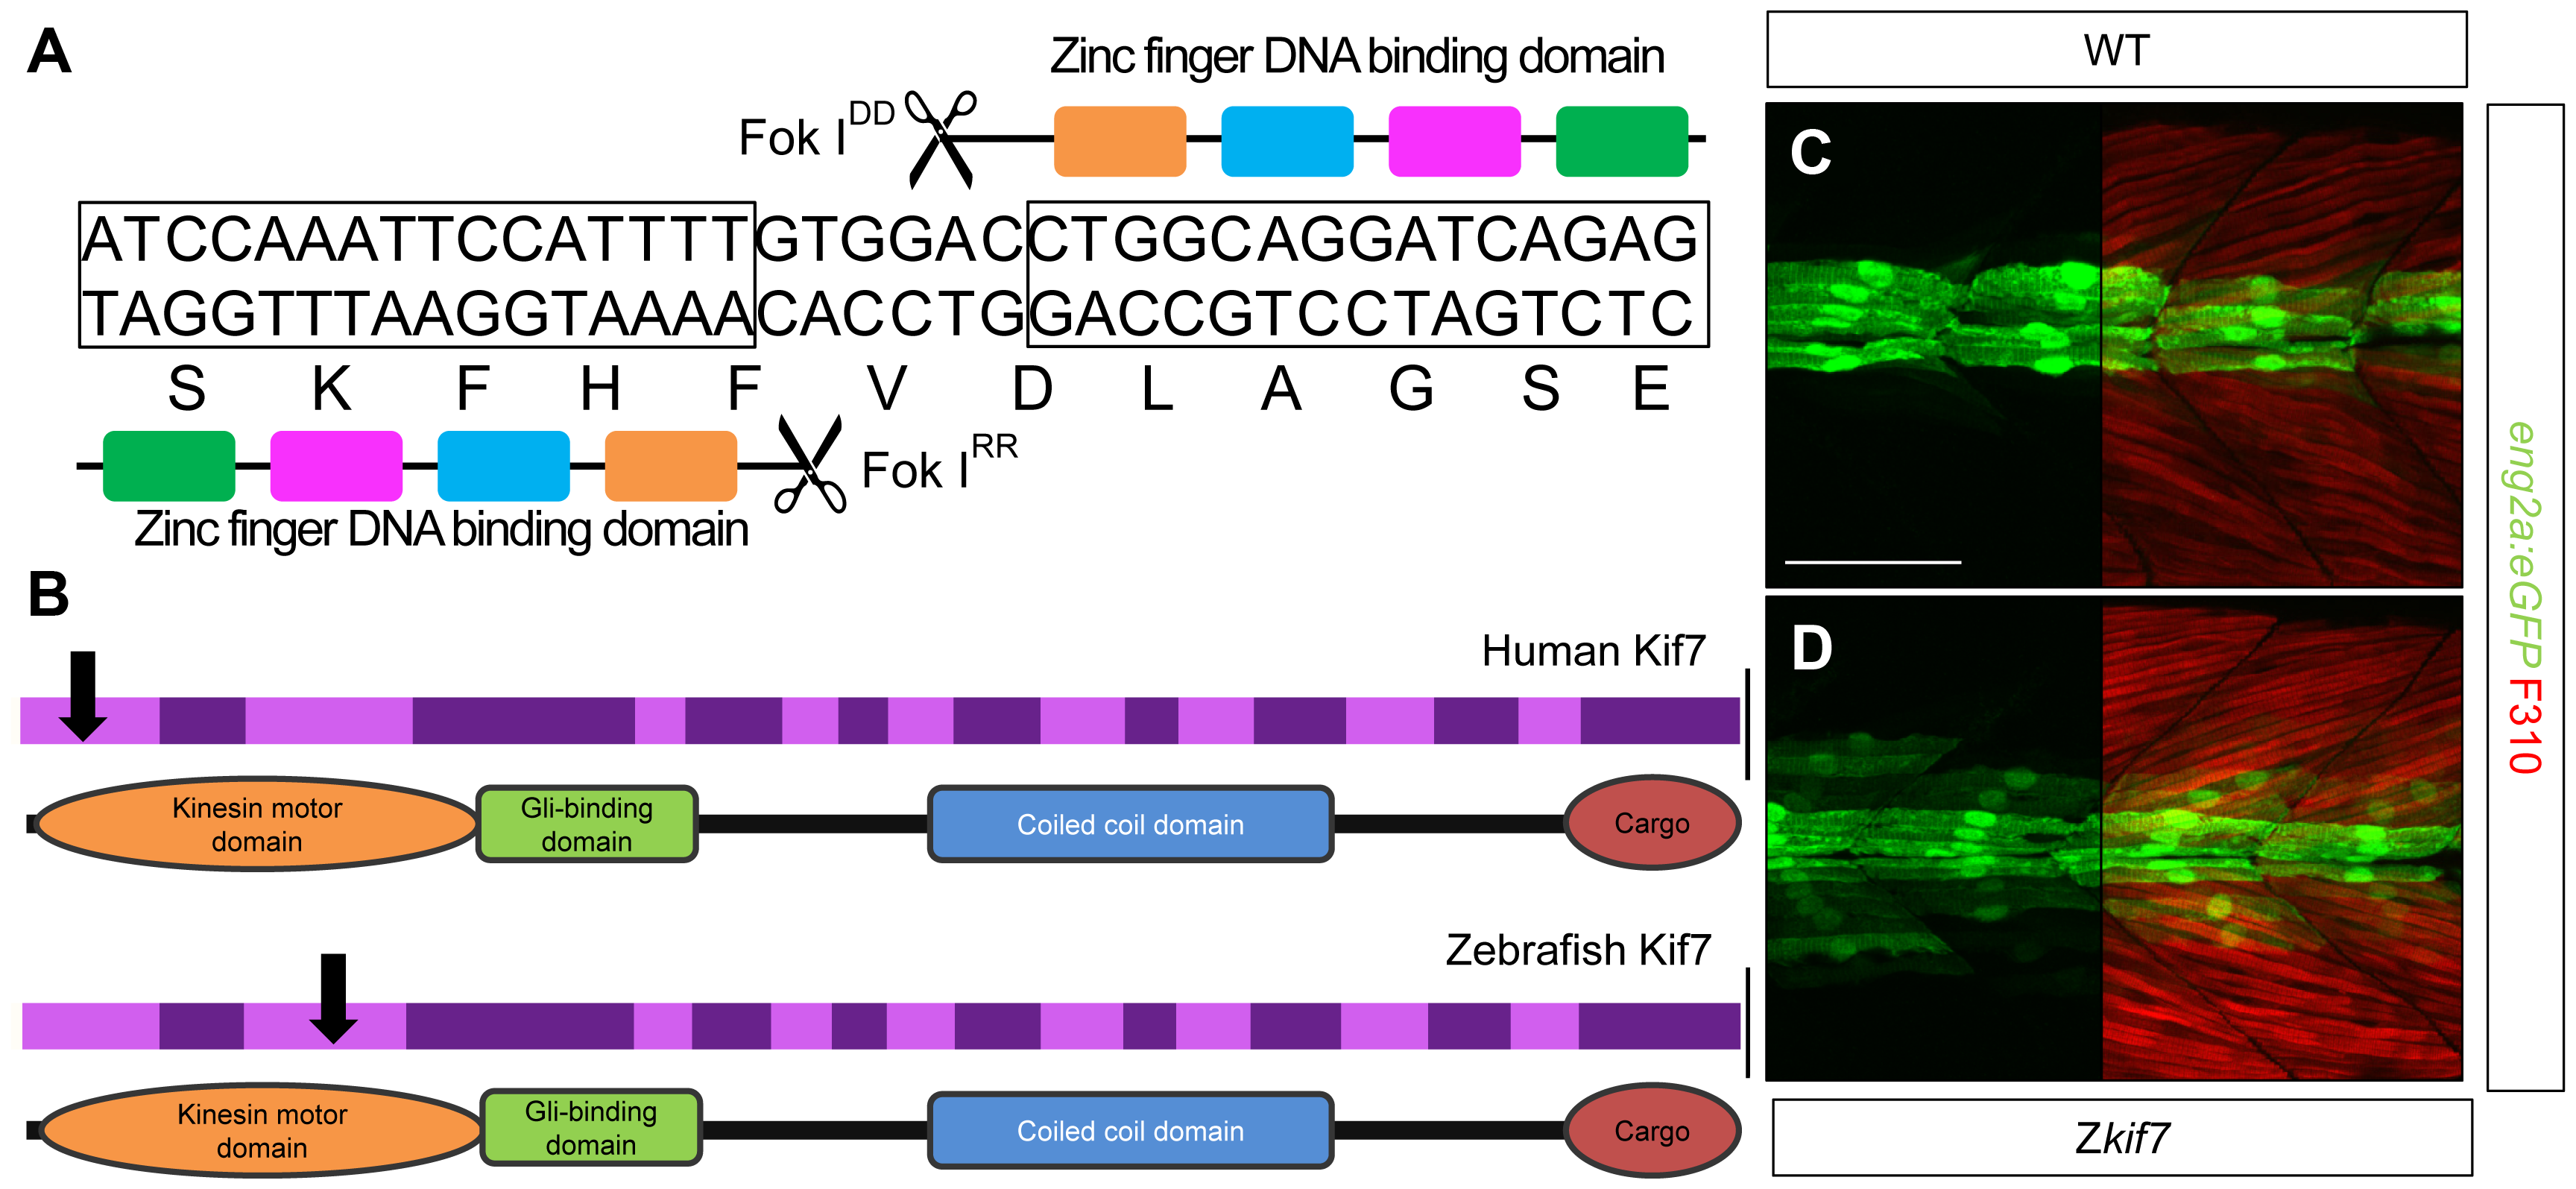 Targeted mutation of the zebrafish <i>kif7</i> gene.